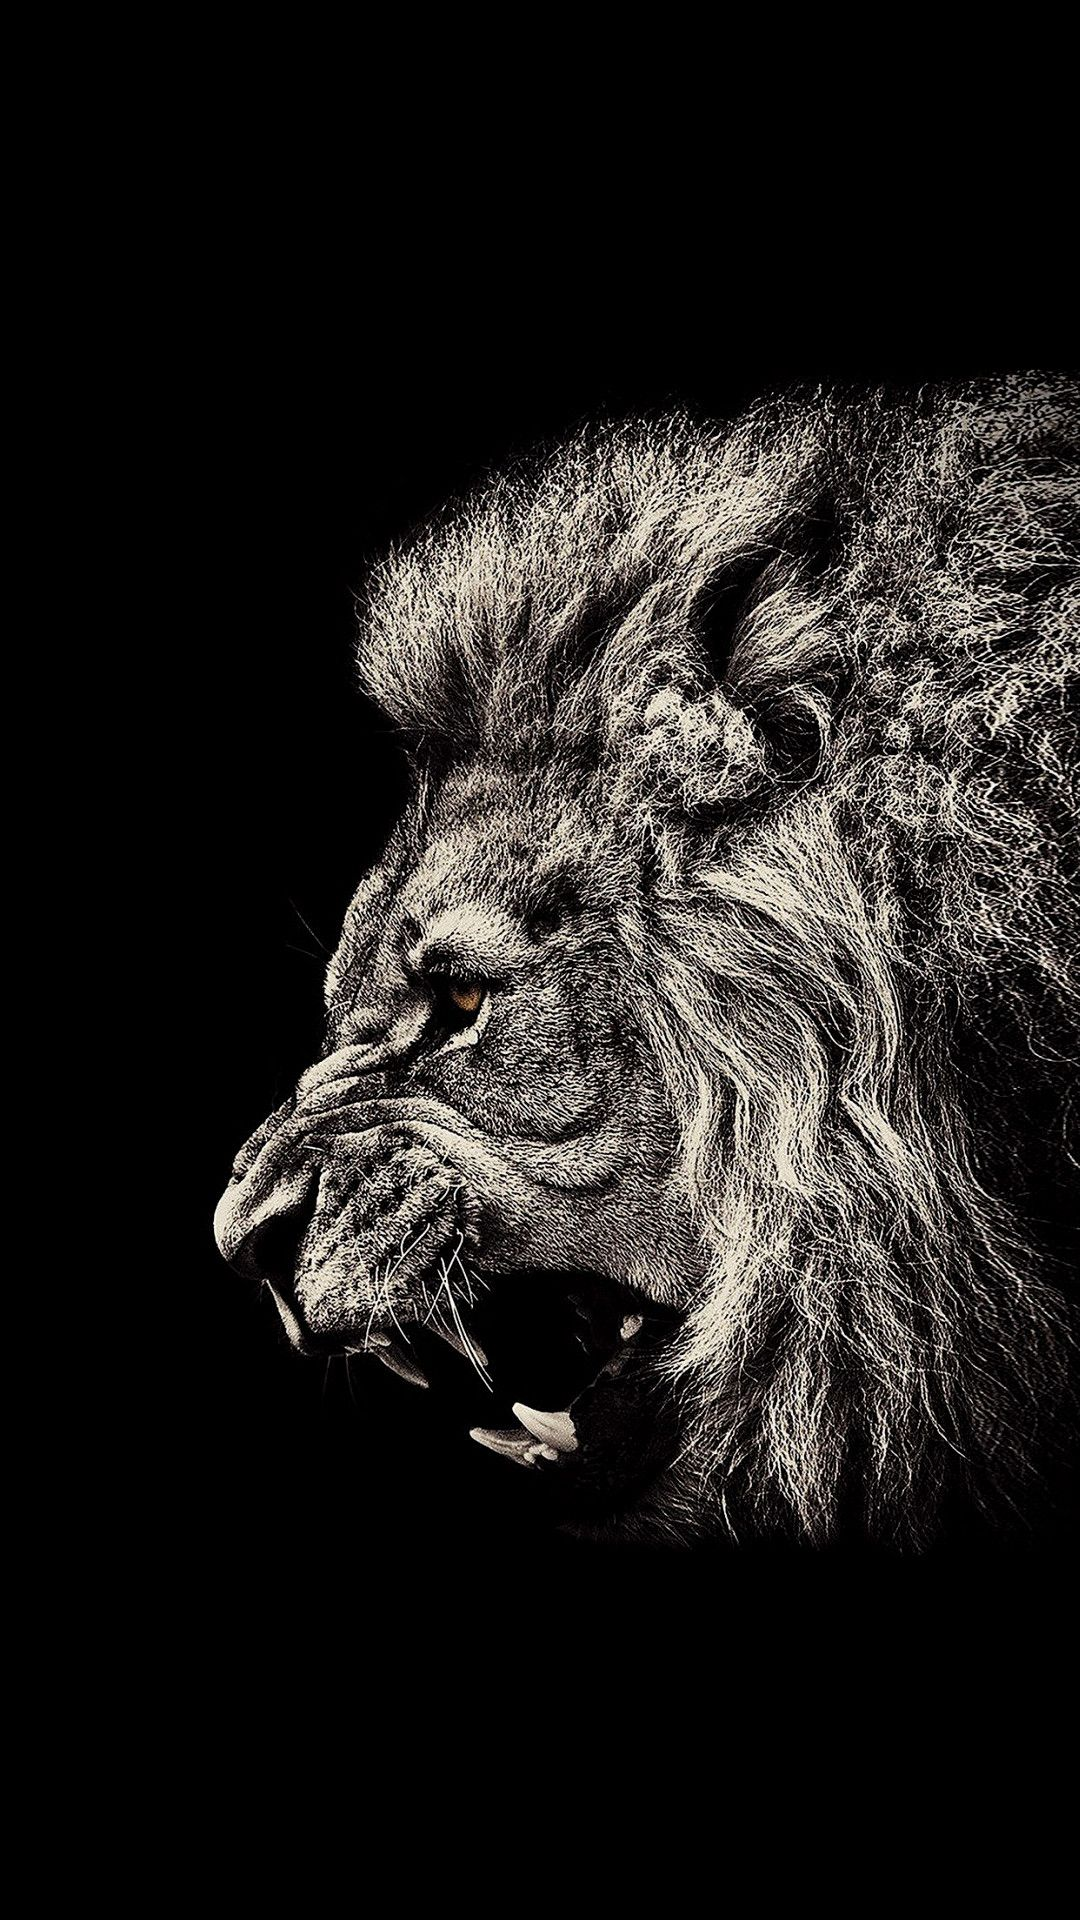 Black Wallpaper Iphone Lion Wallpaper Dark Wallpaper Iphone Hd Wallpaper Iphone